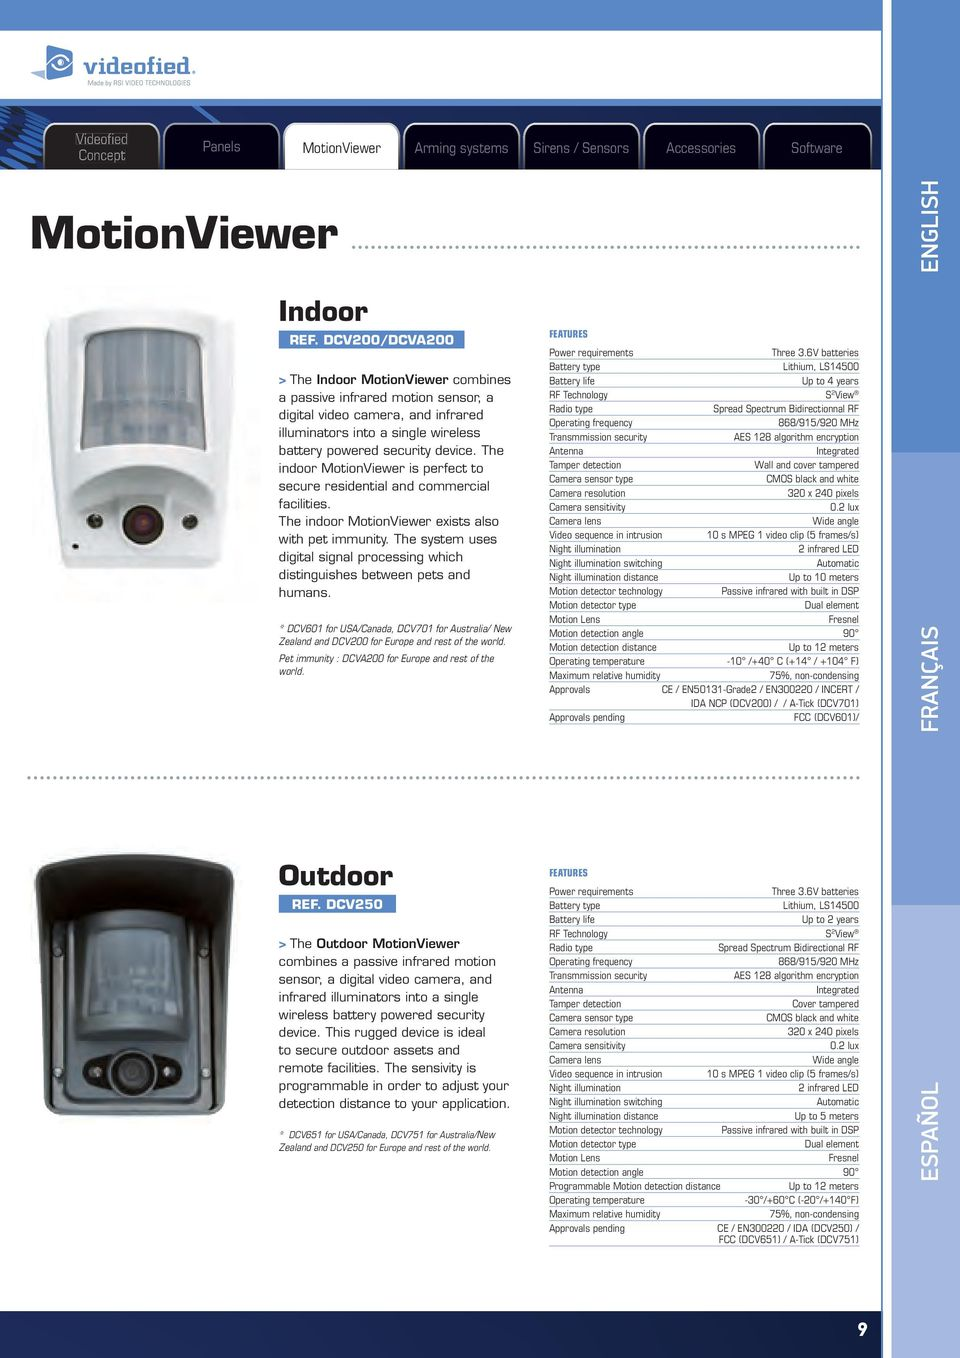 The indoor MotionViewer is perfect to secure residential and commercial facilities. The indoor MotionViewer exists also with pet immunity.